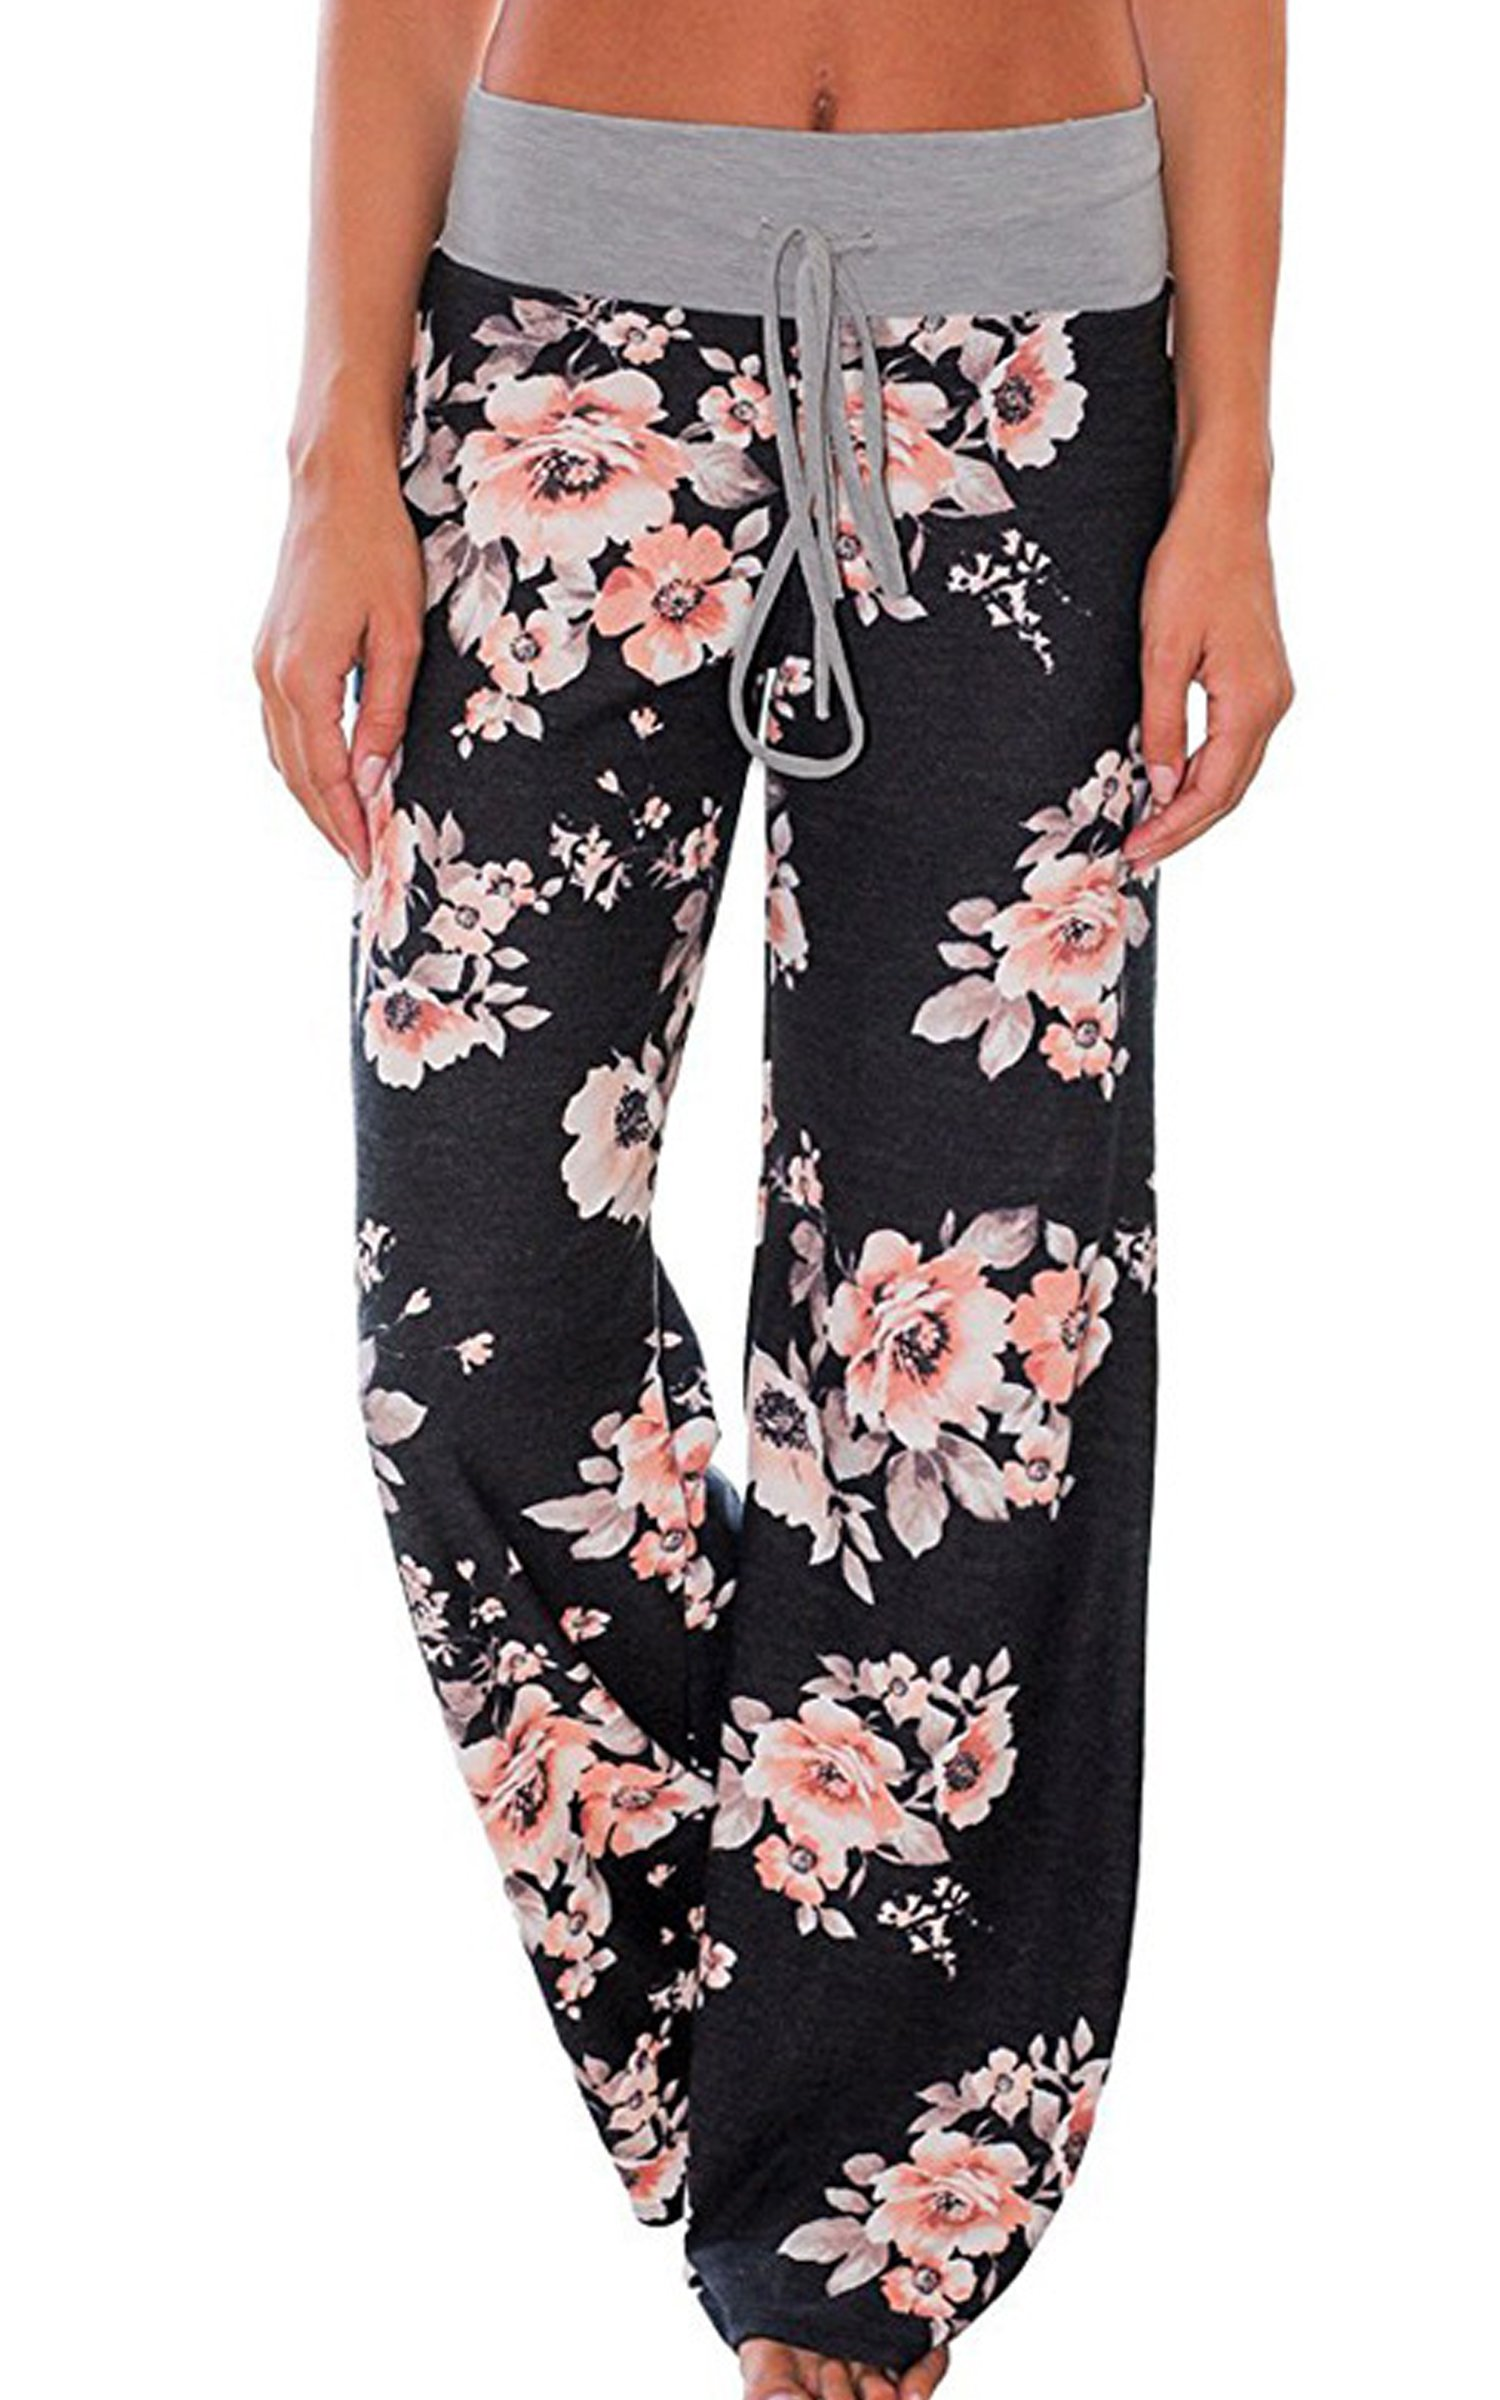 Angashion Women's High Waist Casual Floral Print Drawstring Wide Leg Pants, Black0486, US 8/Tag XL